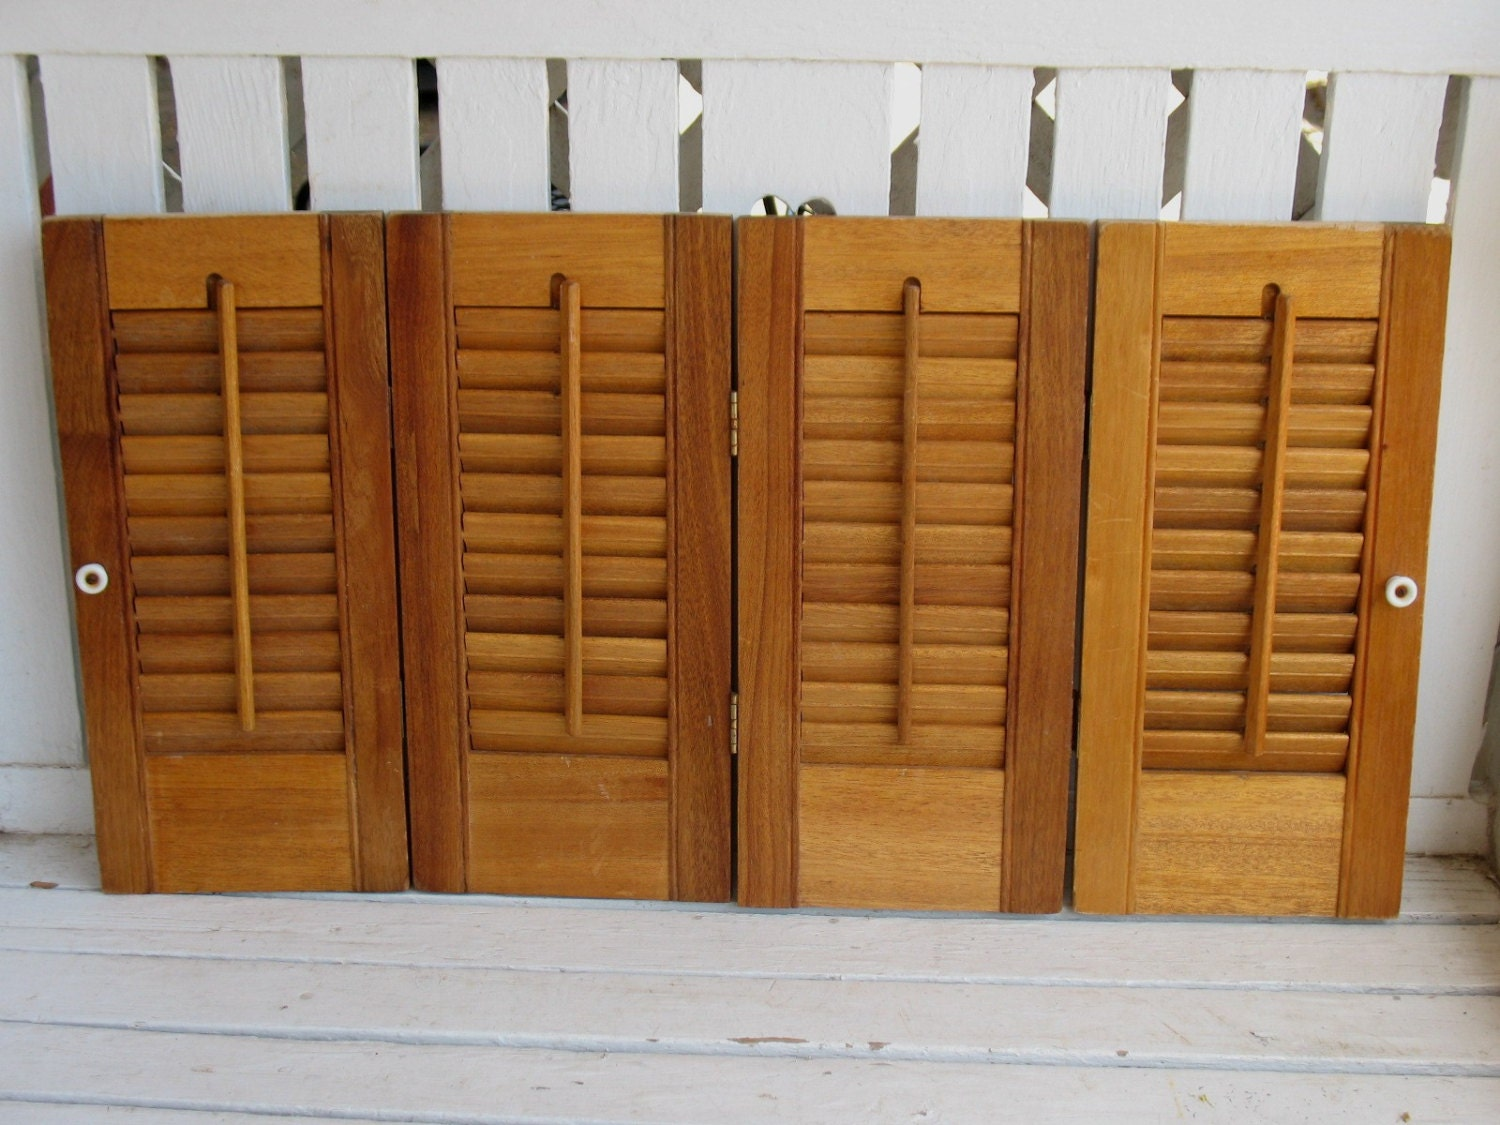 4 Panels Interior Wood Louver Shutters Crafts Wedding